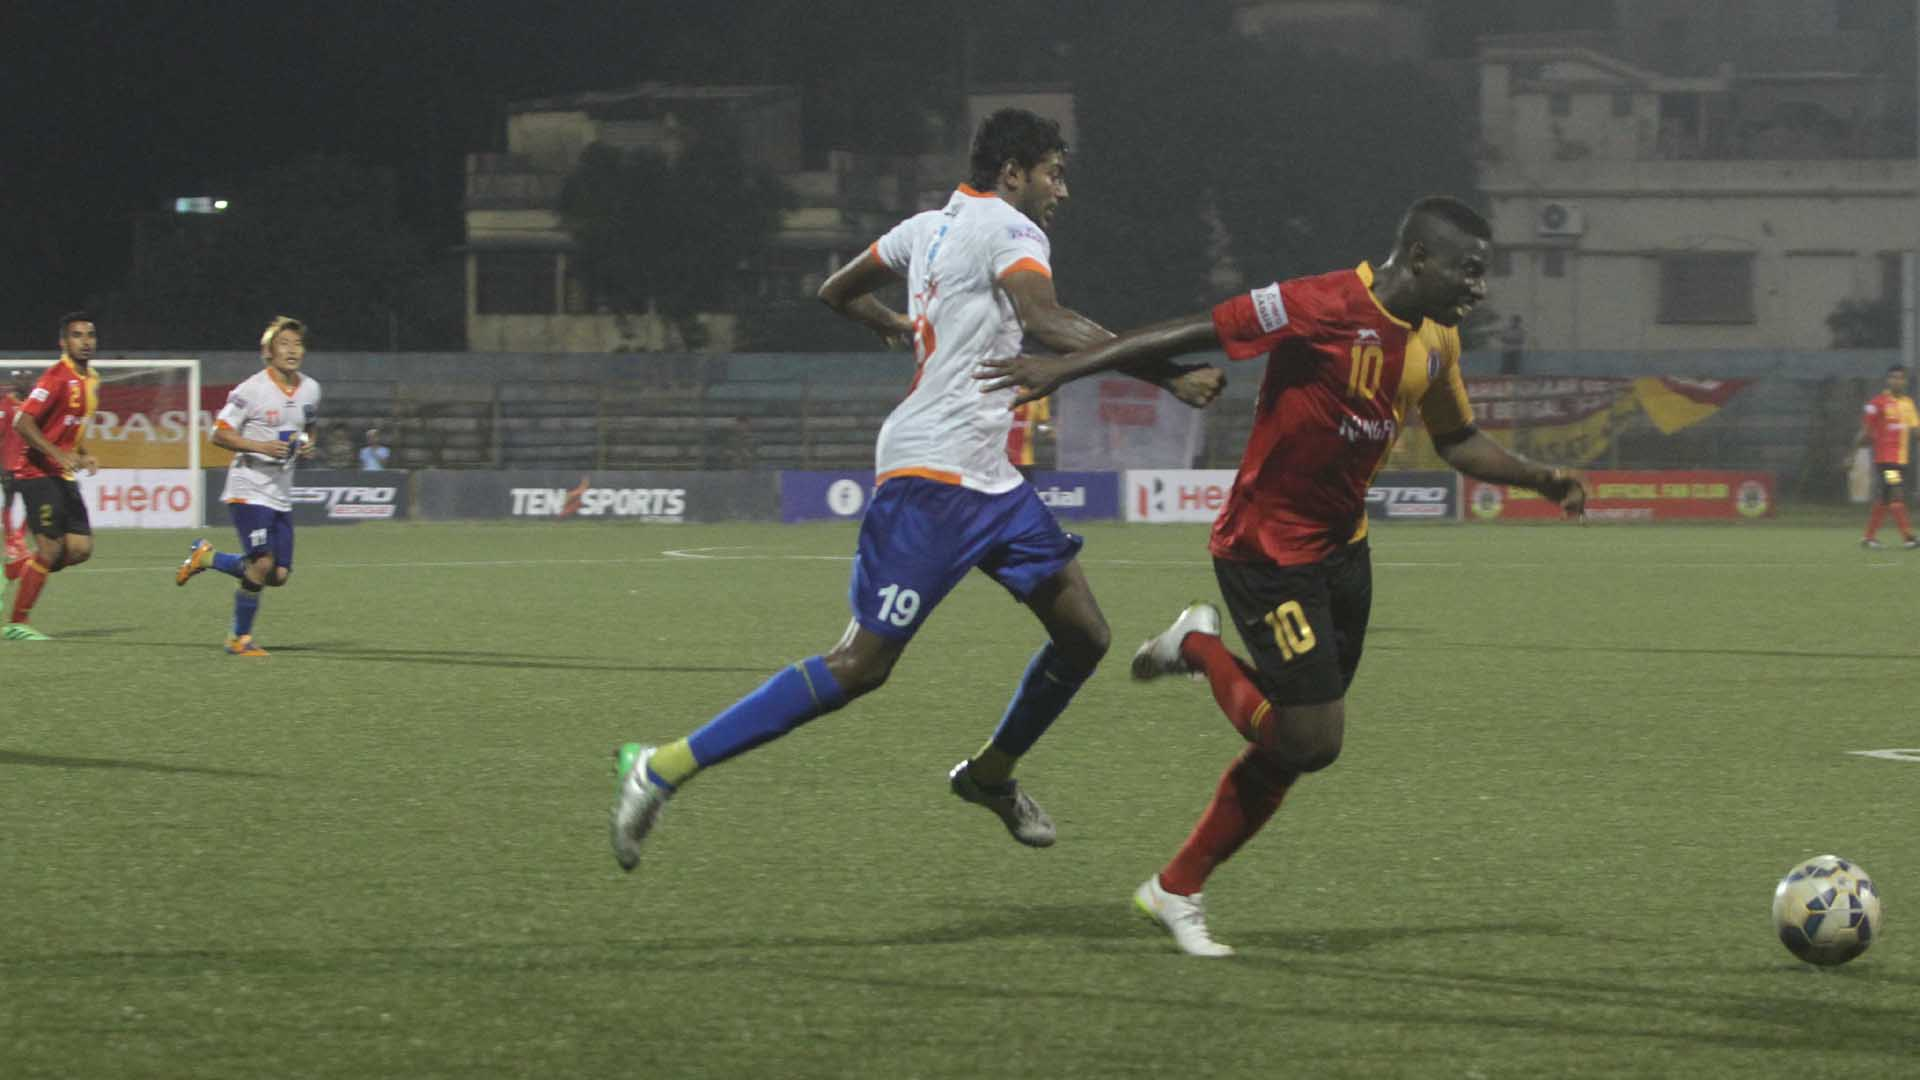 I-League: Five things we learnt from Round 15 | Goal.com